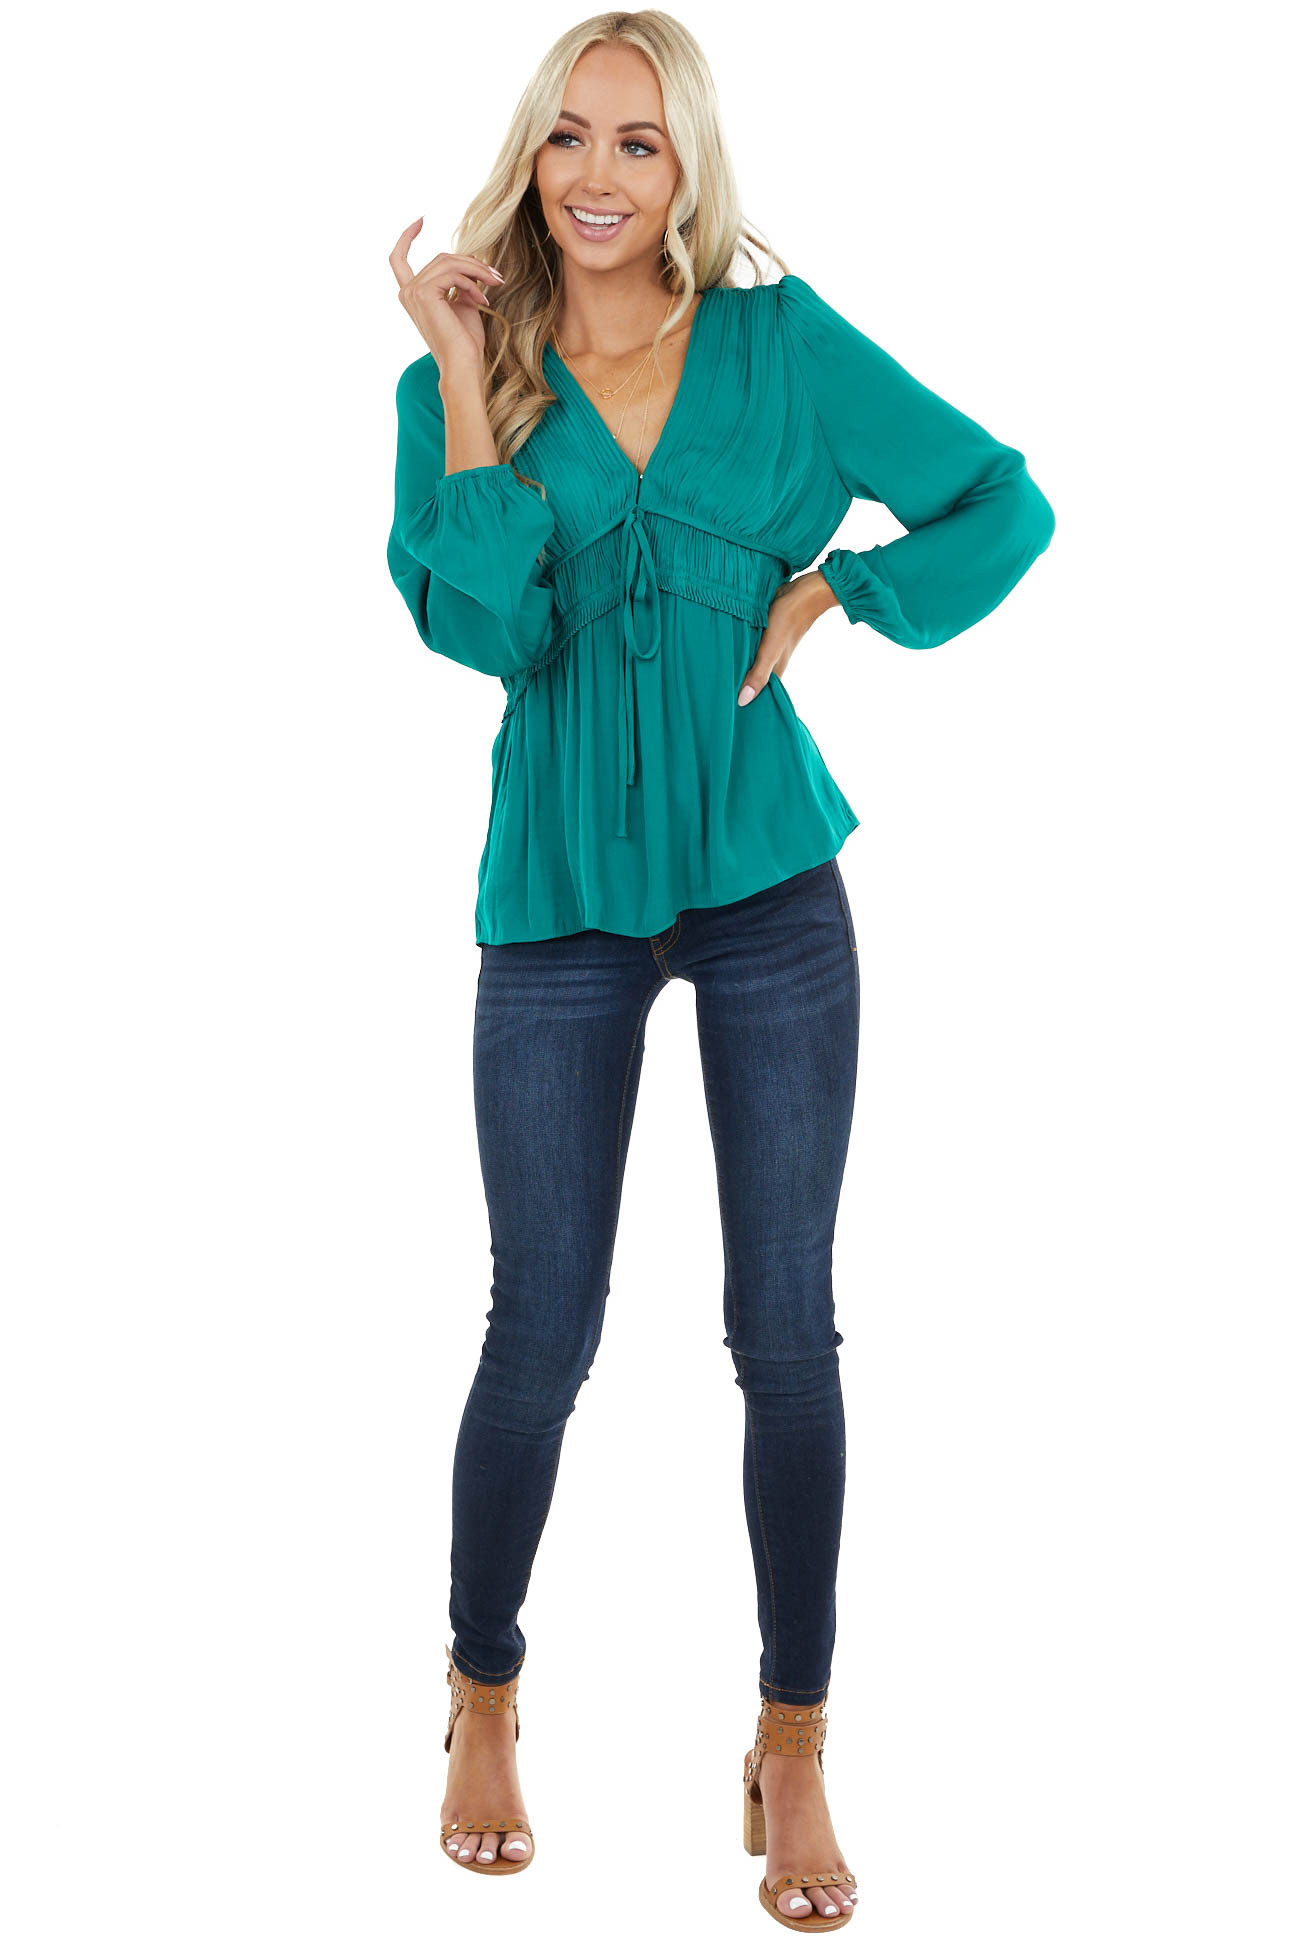 Emerald Cinch Waist Top with Front Tie and Ruffle Details